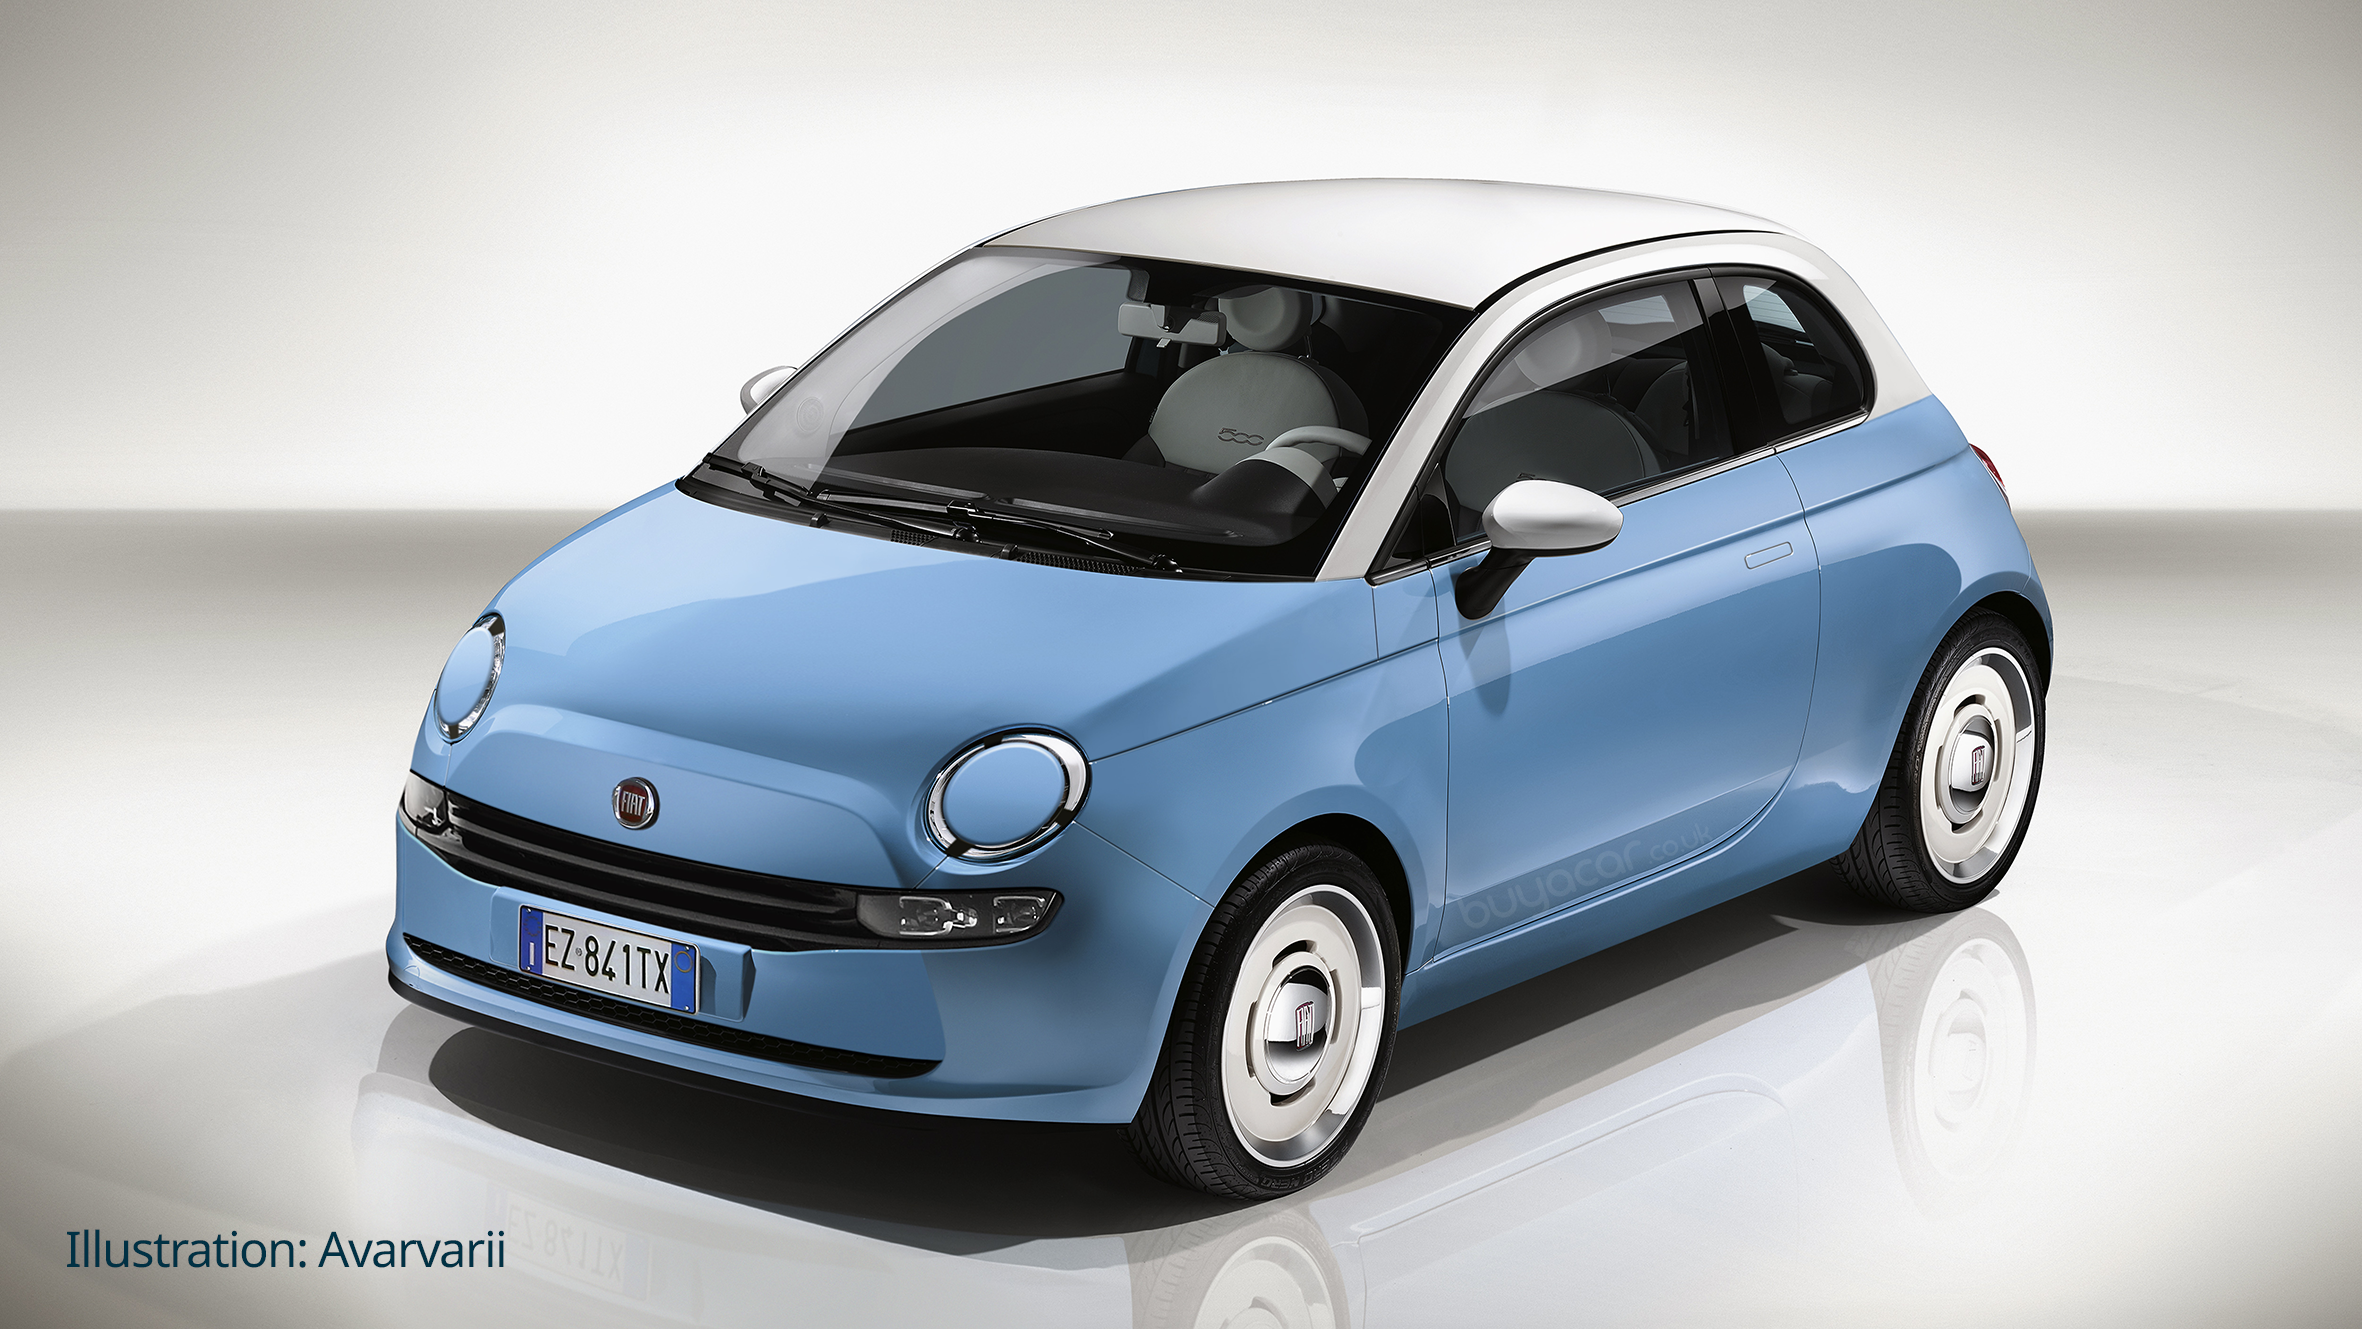 51 All New 2020 Fiat 500 Abarth Release Date